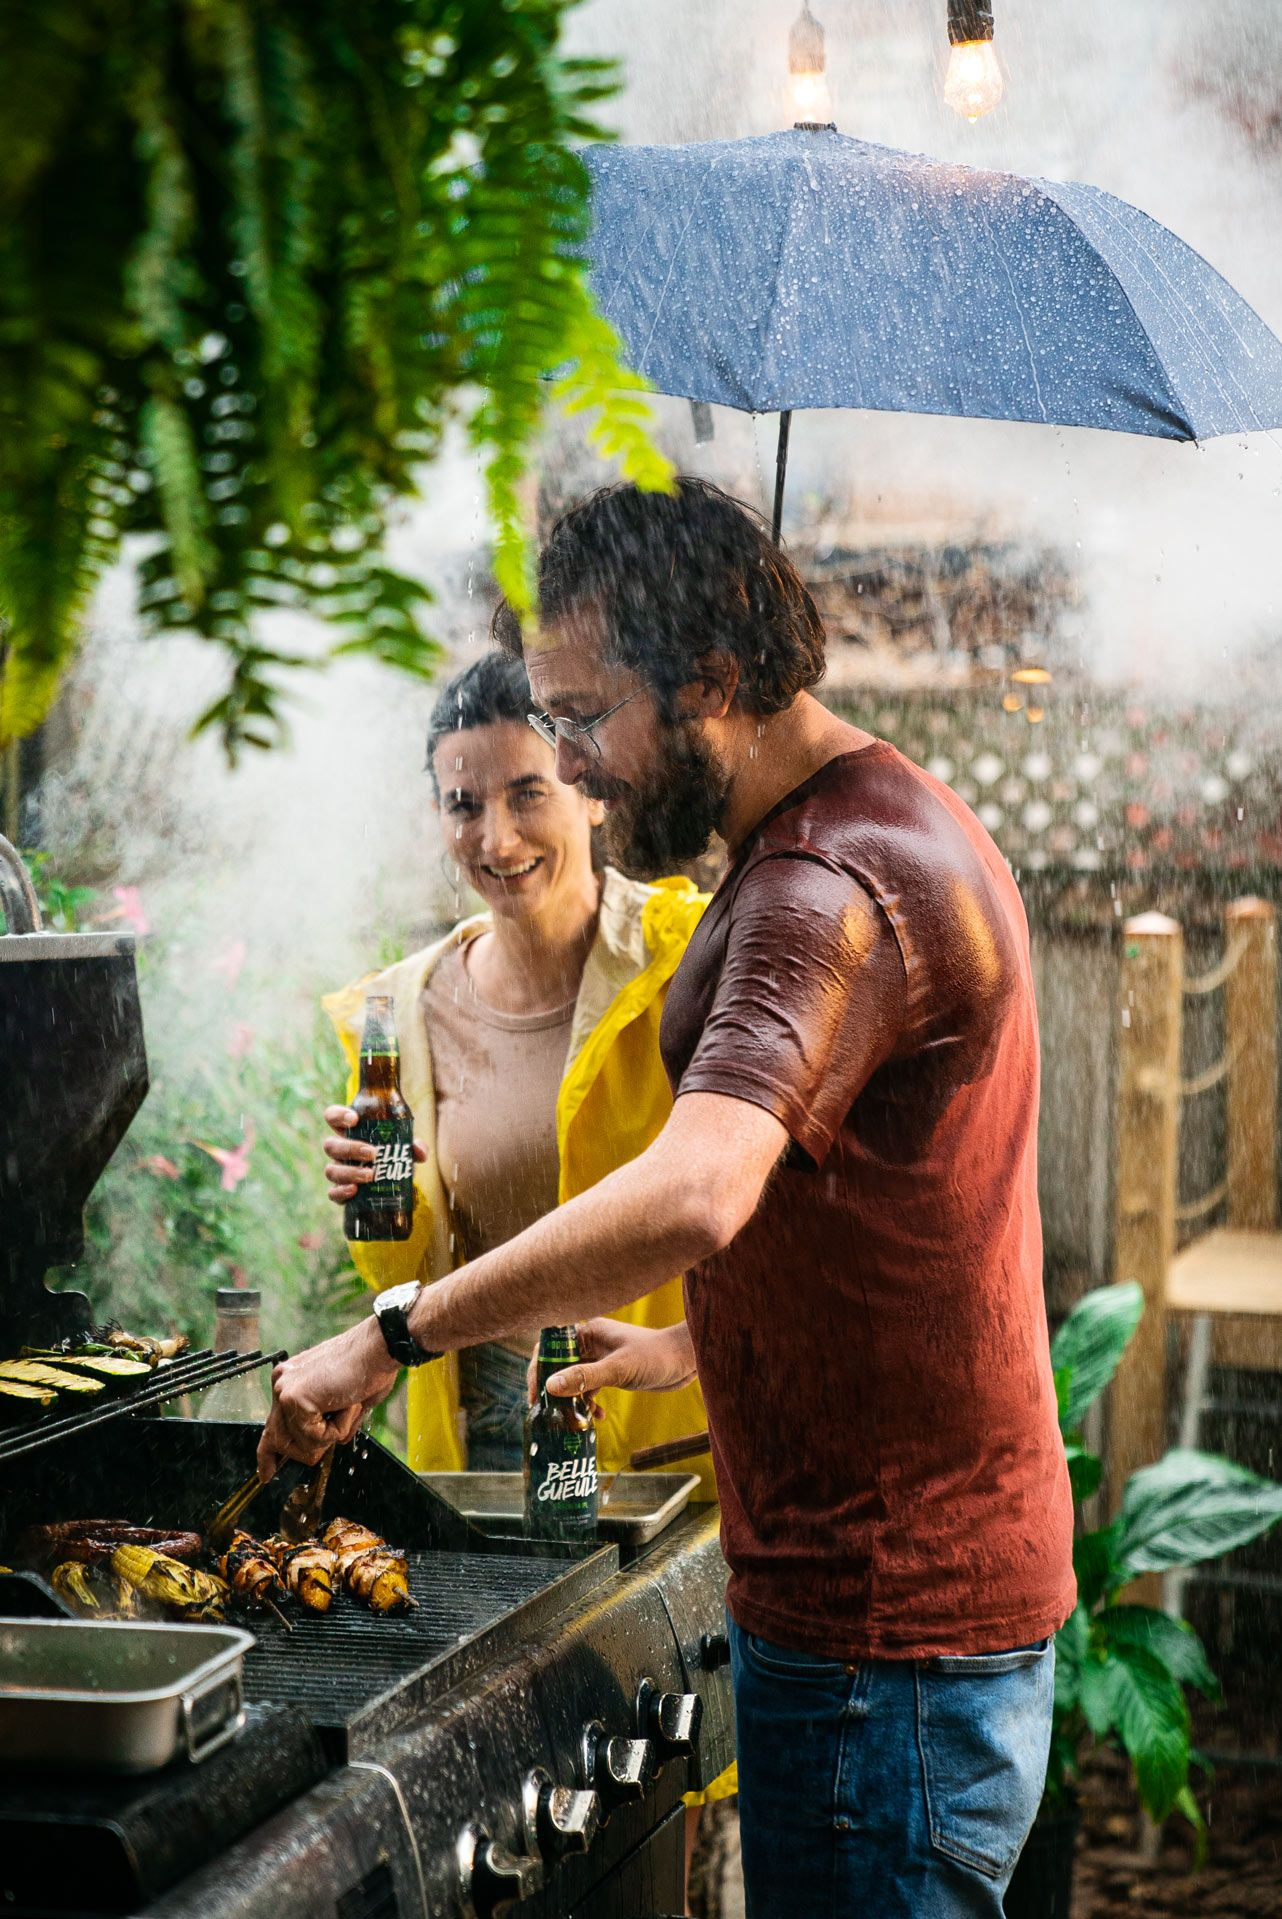 bearded man grilling in front of barbecue in the rain wearing blue jeans and wet red shirt half-protected by umbrella held by woman wearing yellow raincoat photographed by Bruno Florin for Belle Gueule with Forsman & Bodenfors